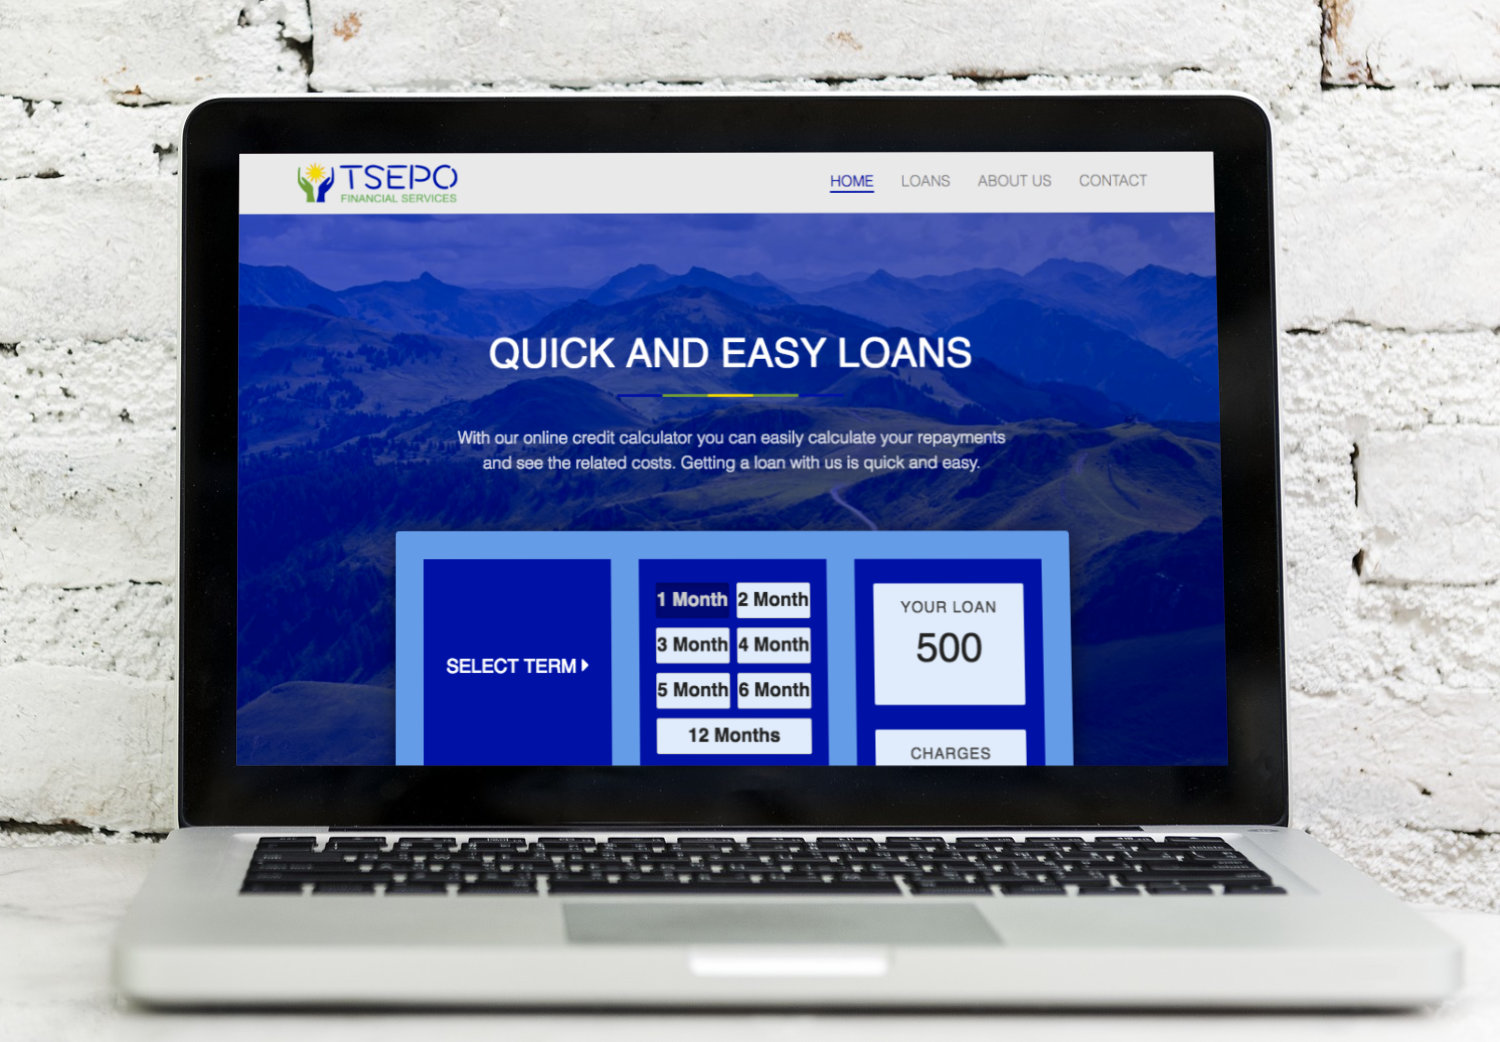 Website - Tsepo Financial Services